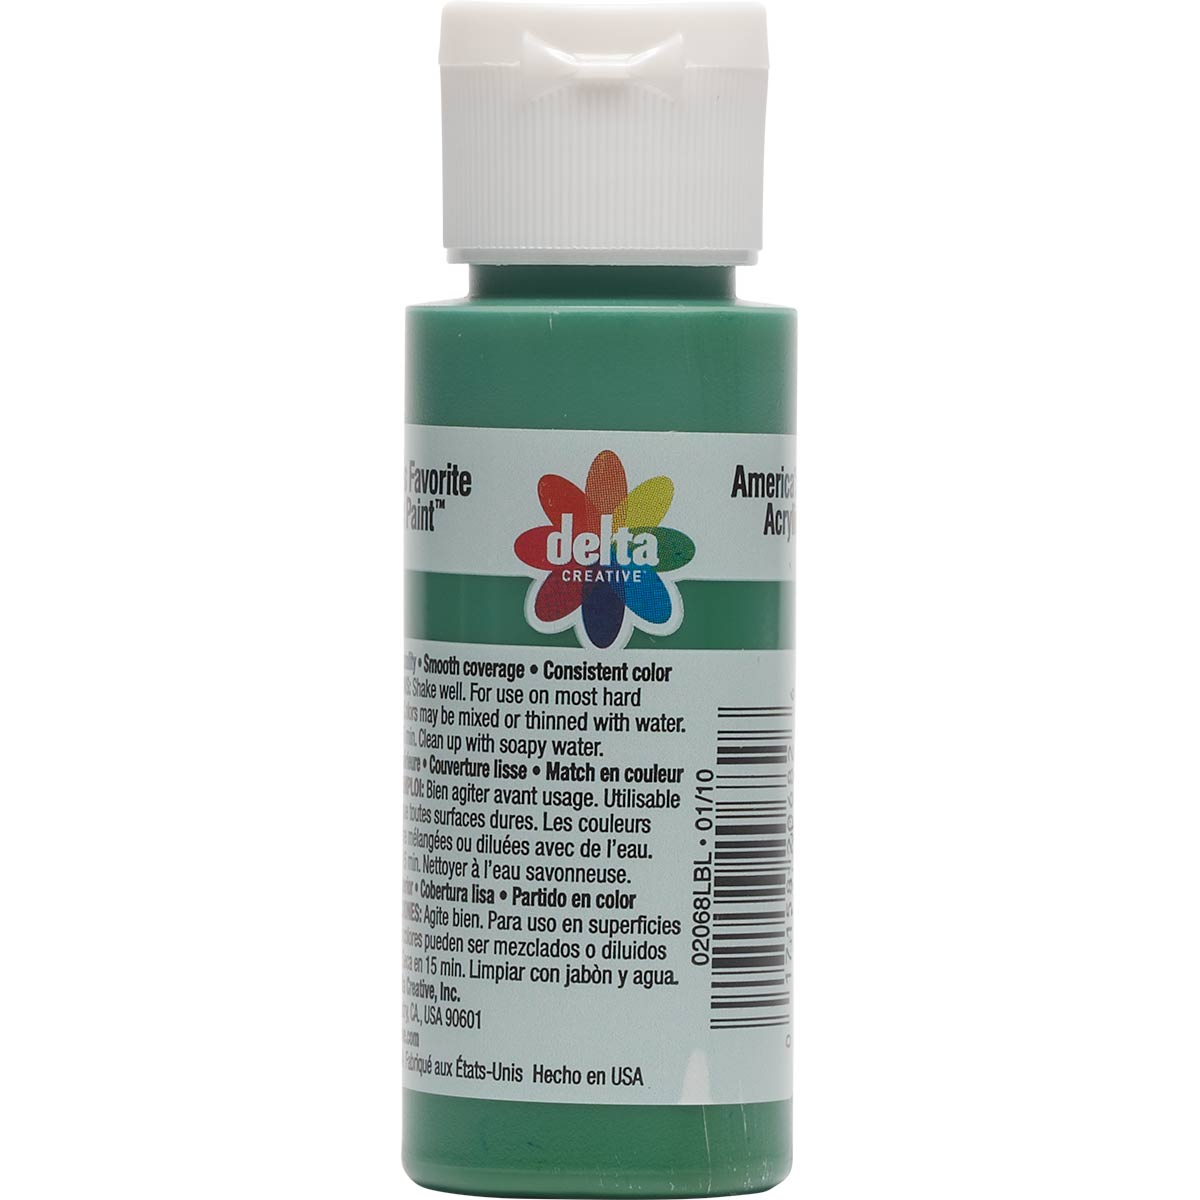 Delta Ceramcoat ® Acrylic Paint - Christmas Green, 2 oz. - 020680202W